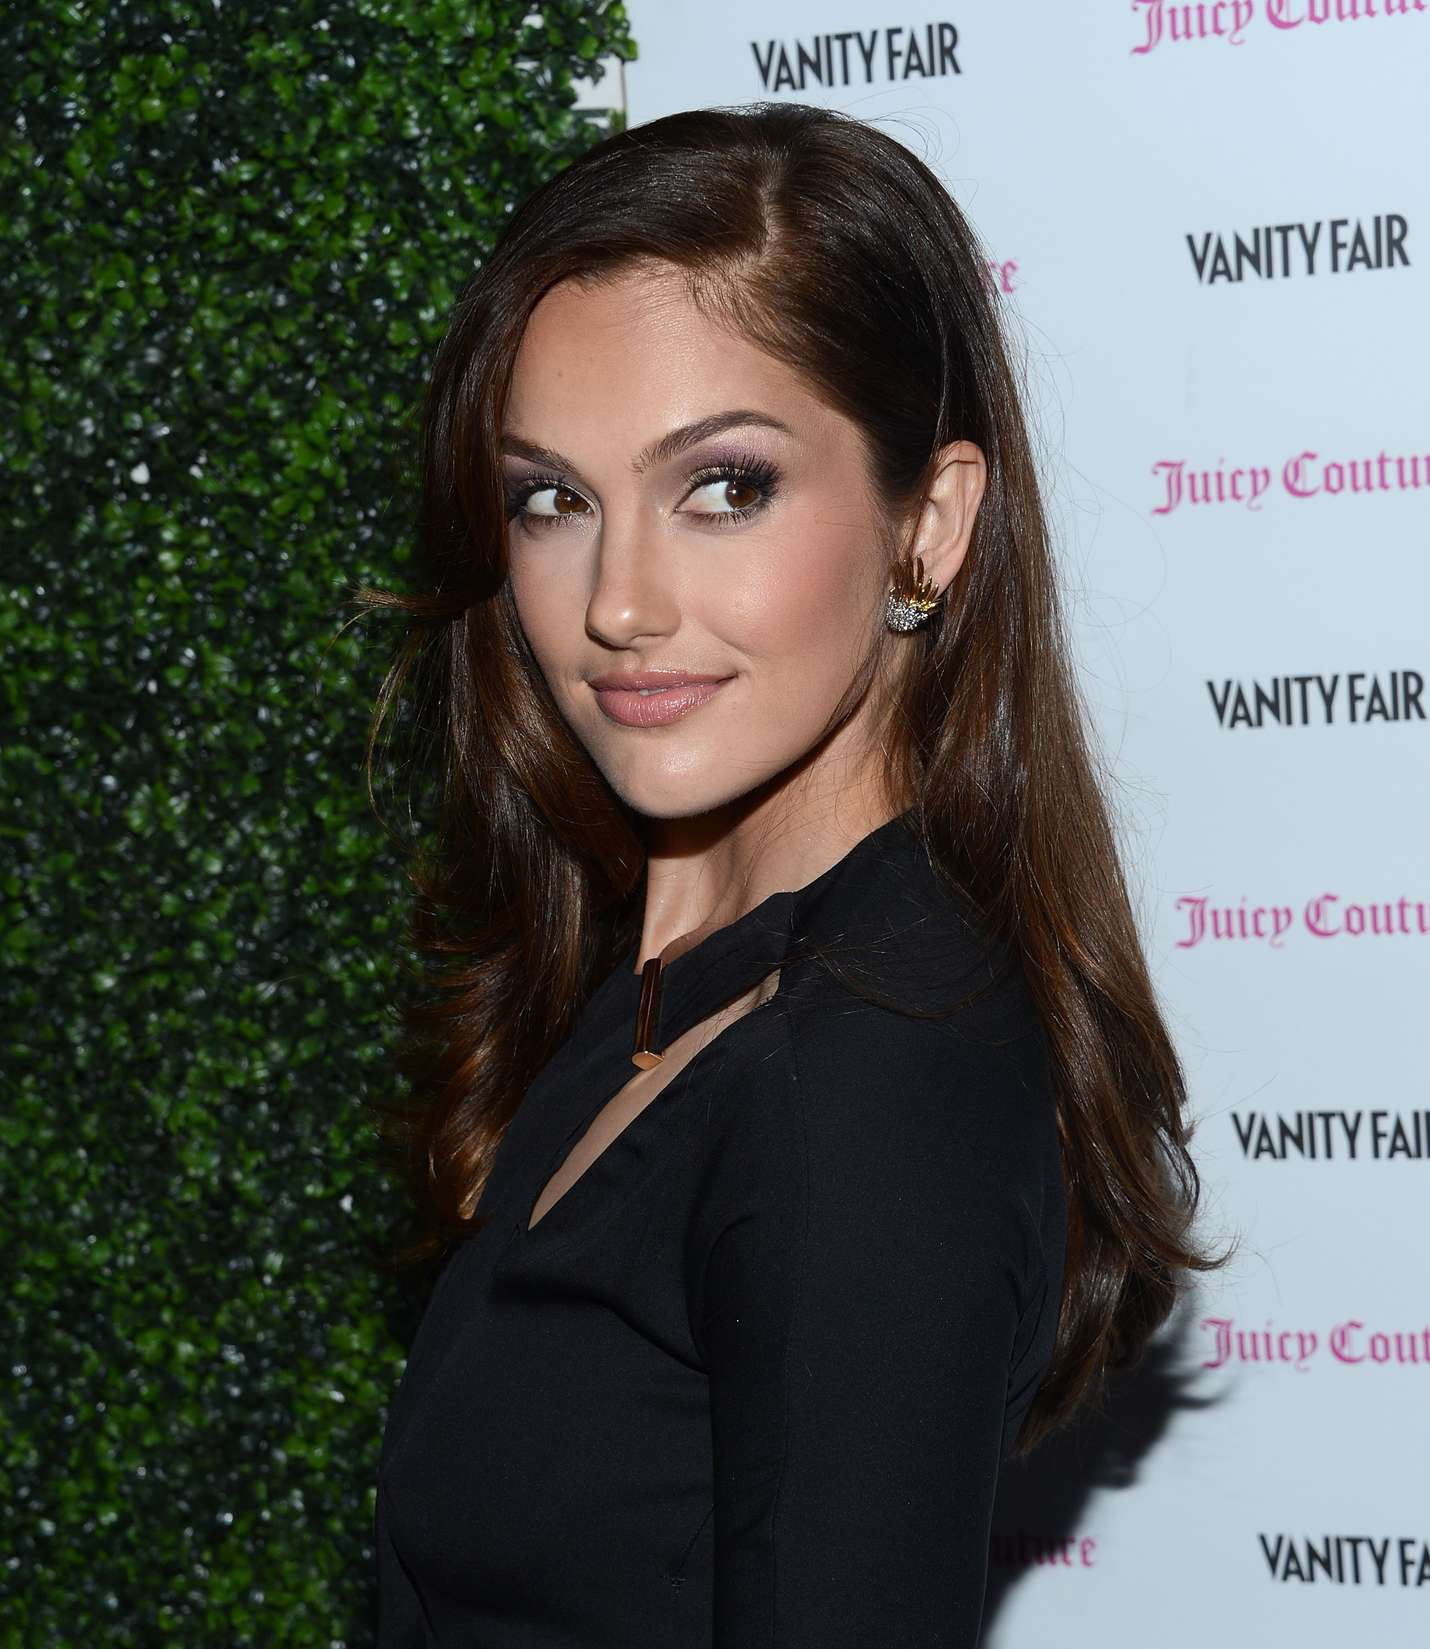 Minka Kelly 2013 : Minka Kelly – Vanity Fair and Juicy Couture 2013 Vanities Calendar event-13